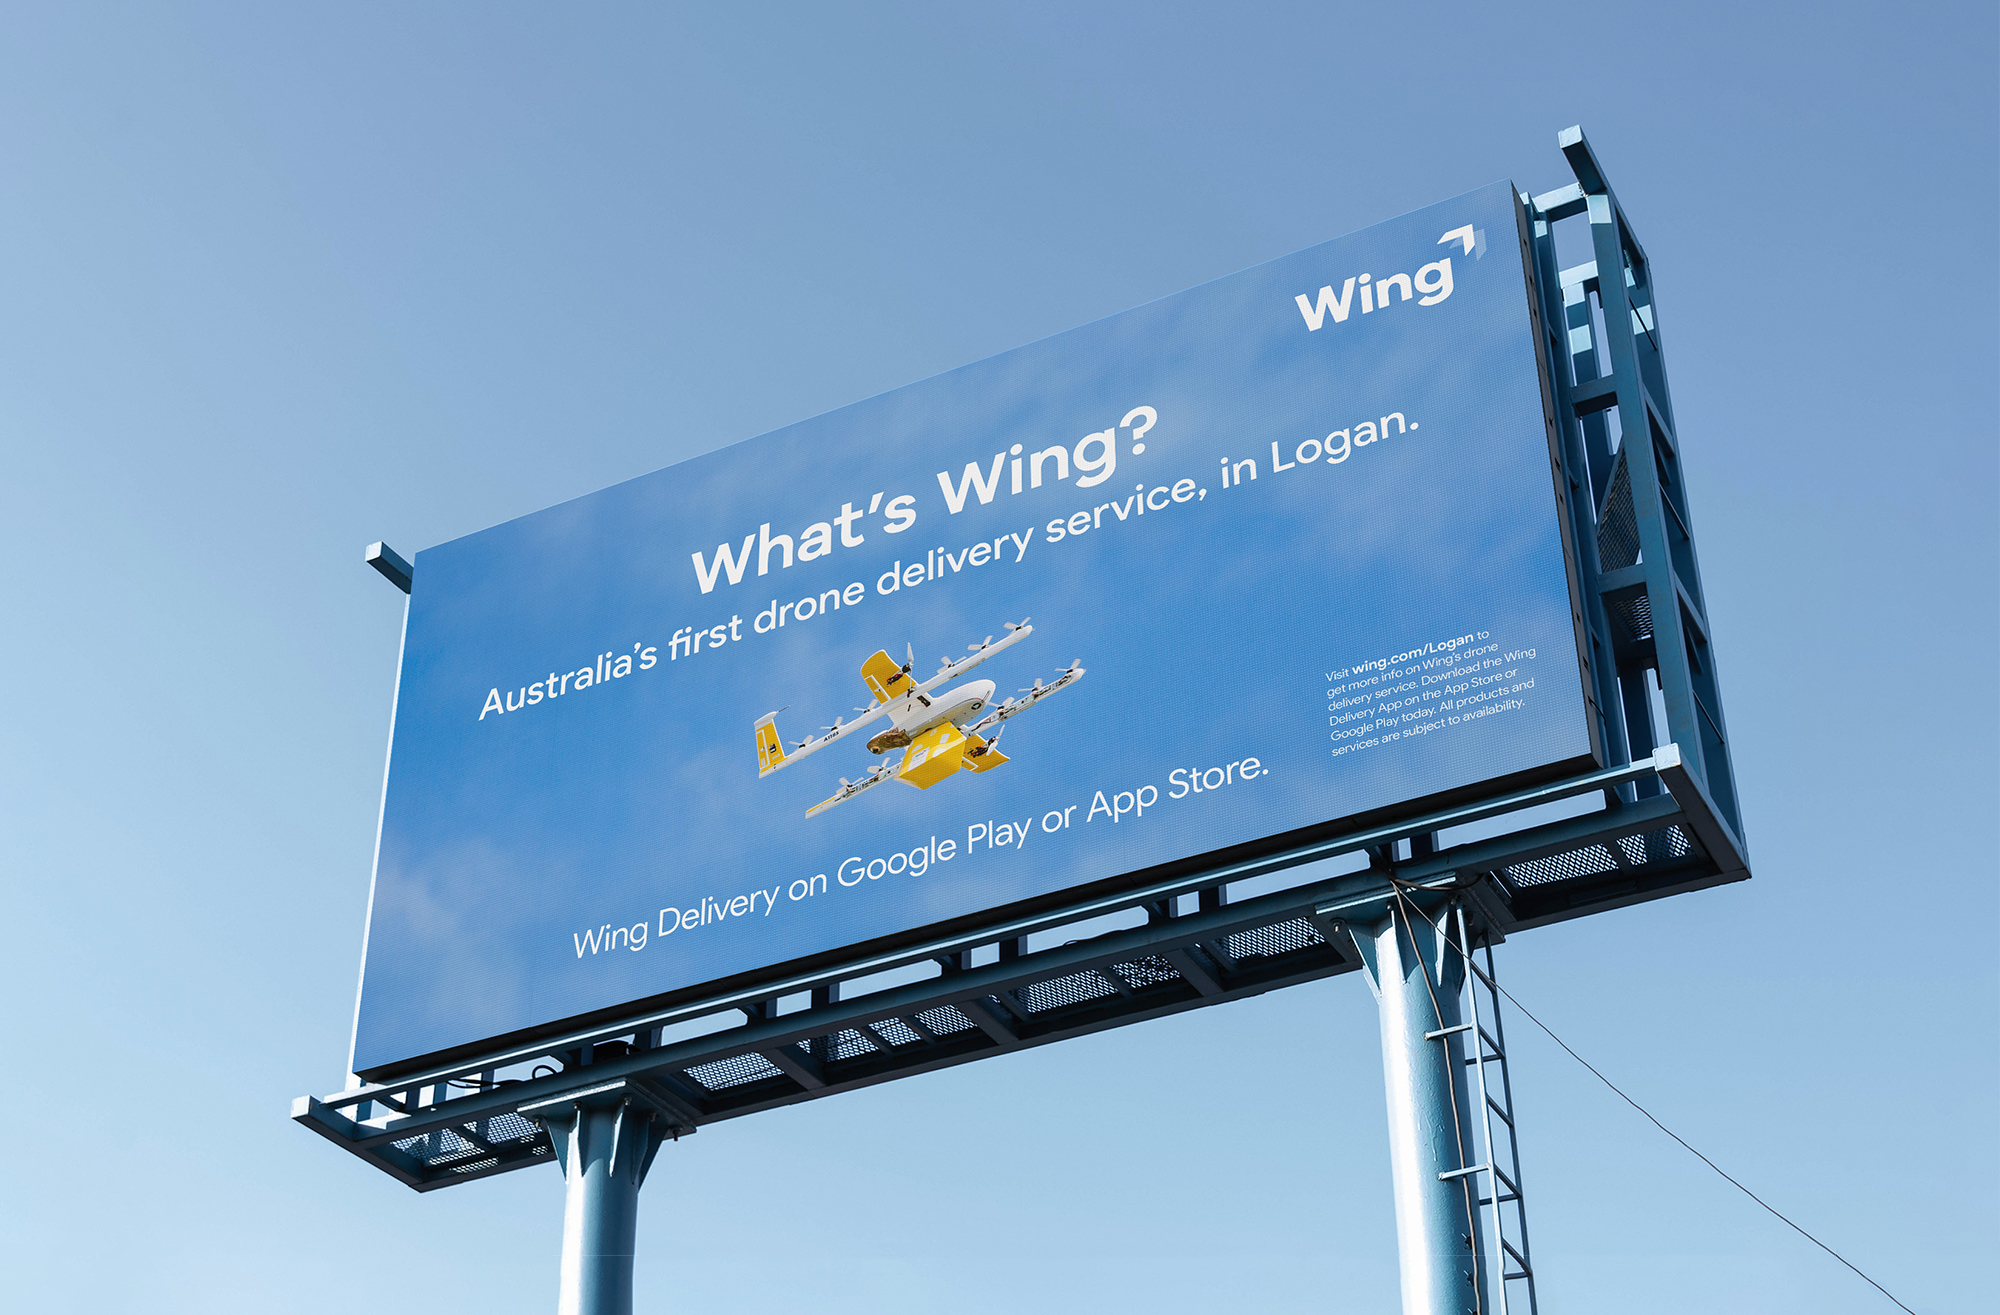 """Image of a billboard featuring photography of a Wing commercial drone. The billboard says """"What's Wing? Australia's first drone service, in Logan. Wing Delivery on Google Play or App Store."""""""